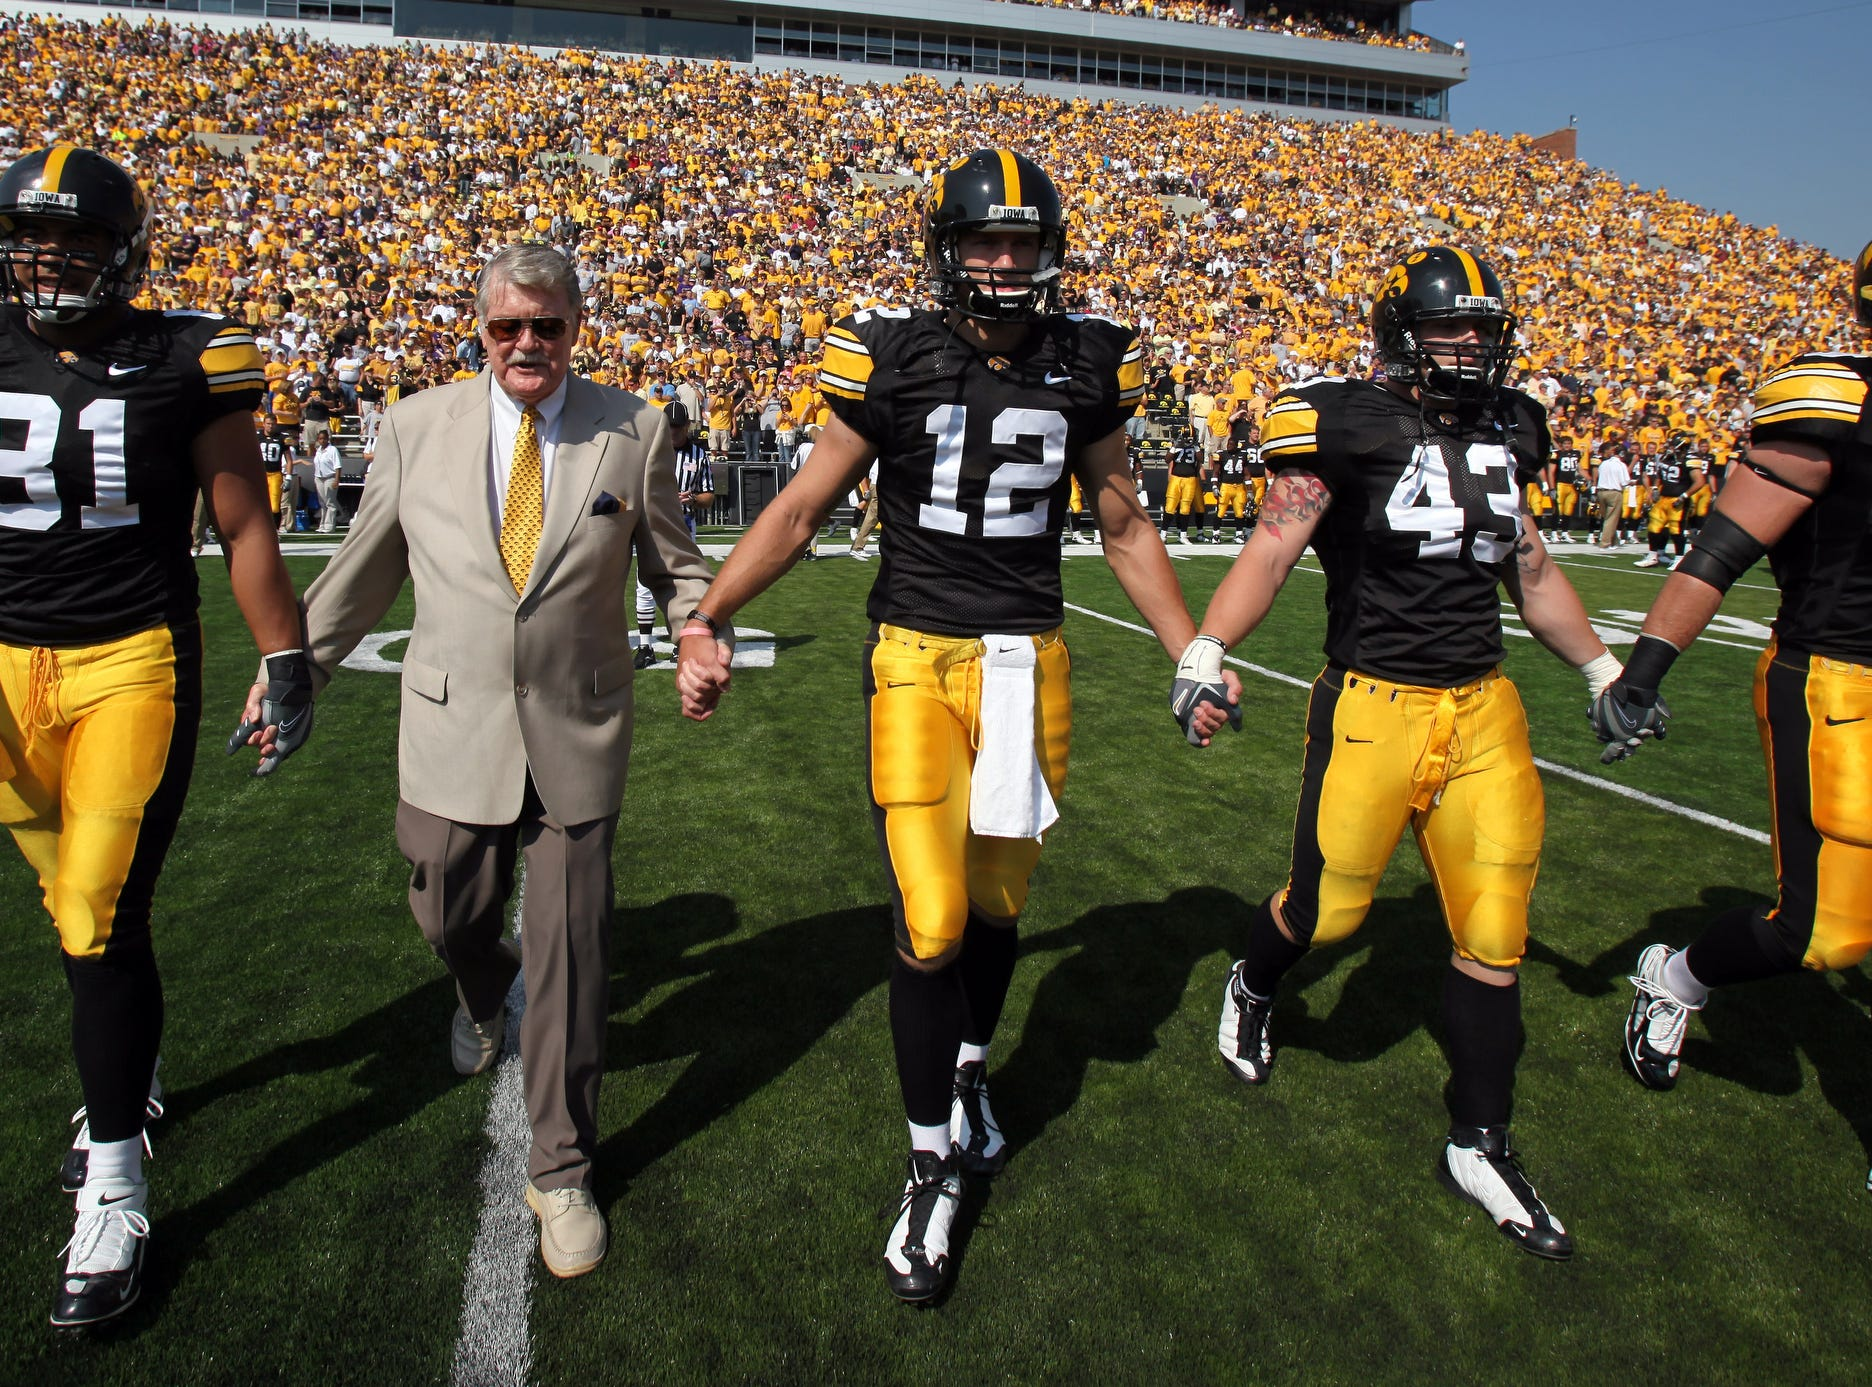 Former Iowa football coach Hayden Fry walks as an honorary captain with players Tony Moeaki (81), Ricky Stanzi (12), Pat Angerer (43) and A.J. Edds (49) before kickoff Sept. 5, 2009 in Iowa City.